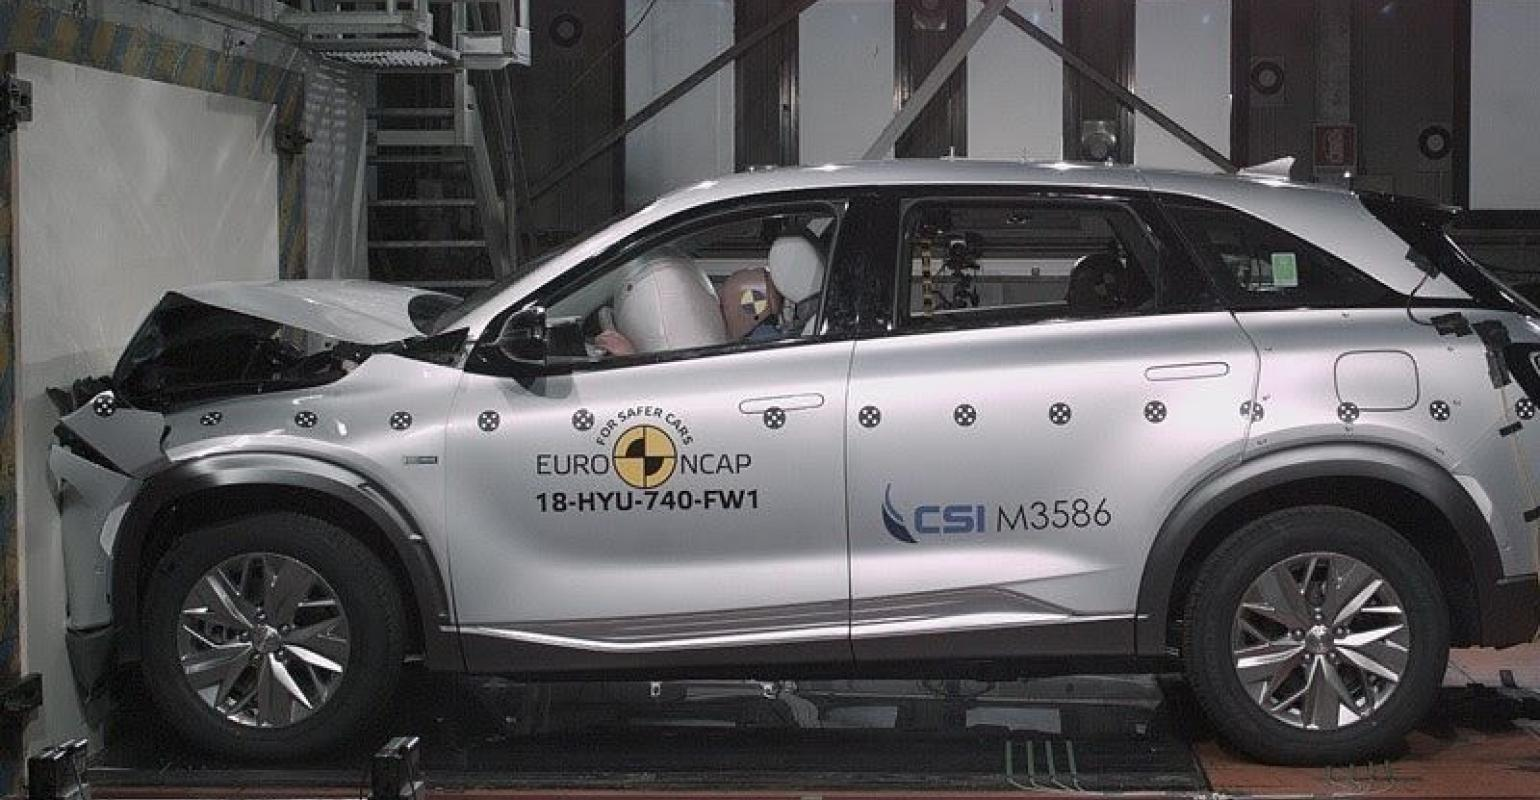 Hyundai Nexo Fuel Cell Vehicle Gets Top Crash Test Ratings